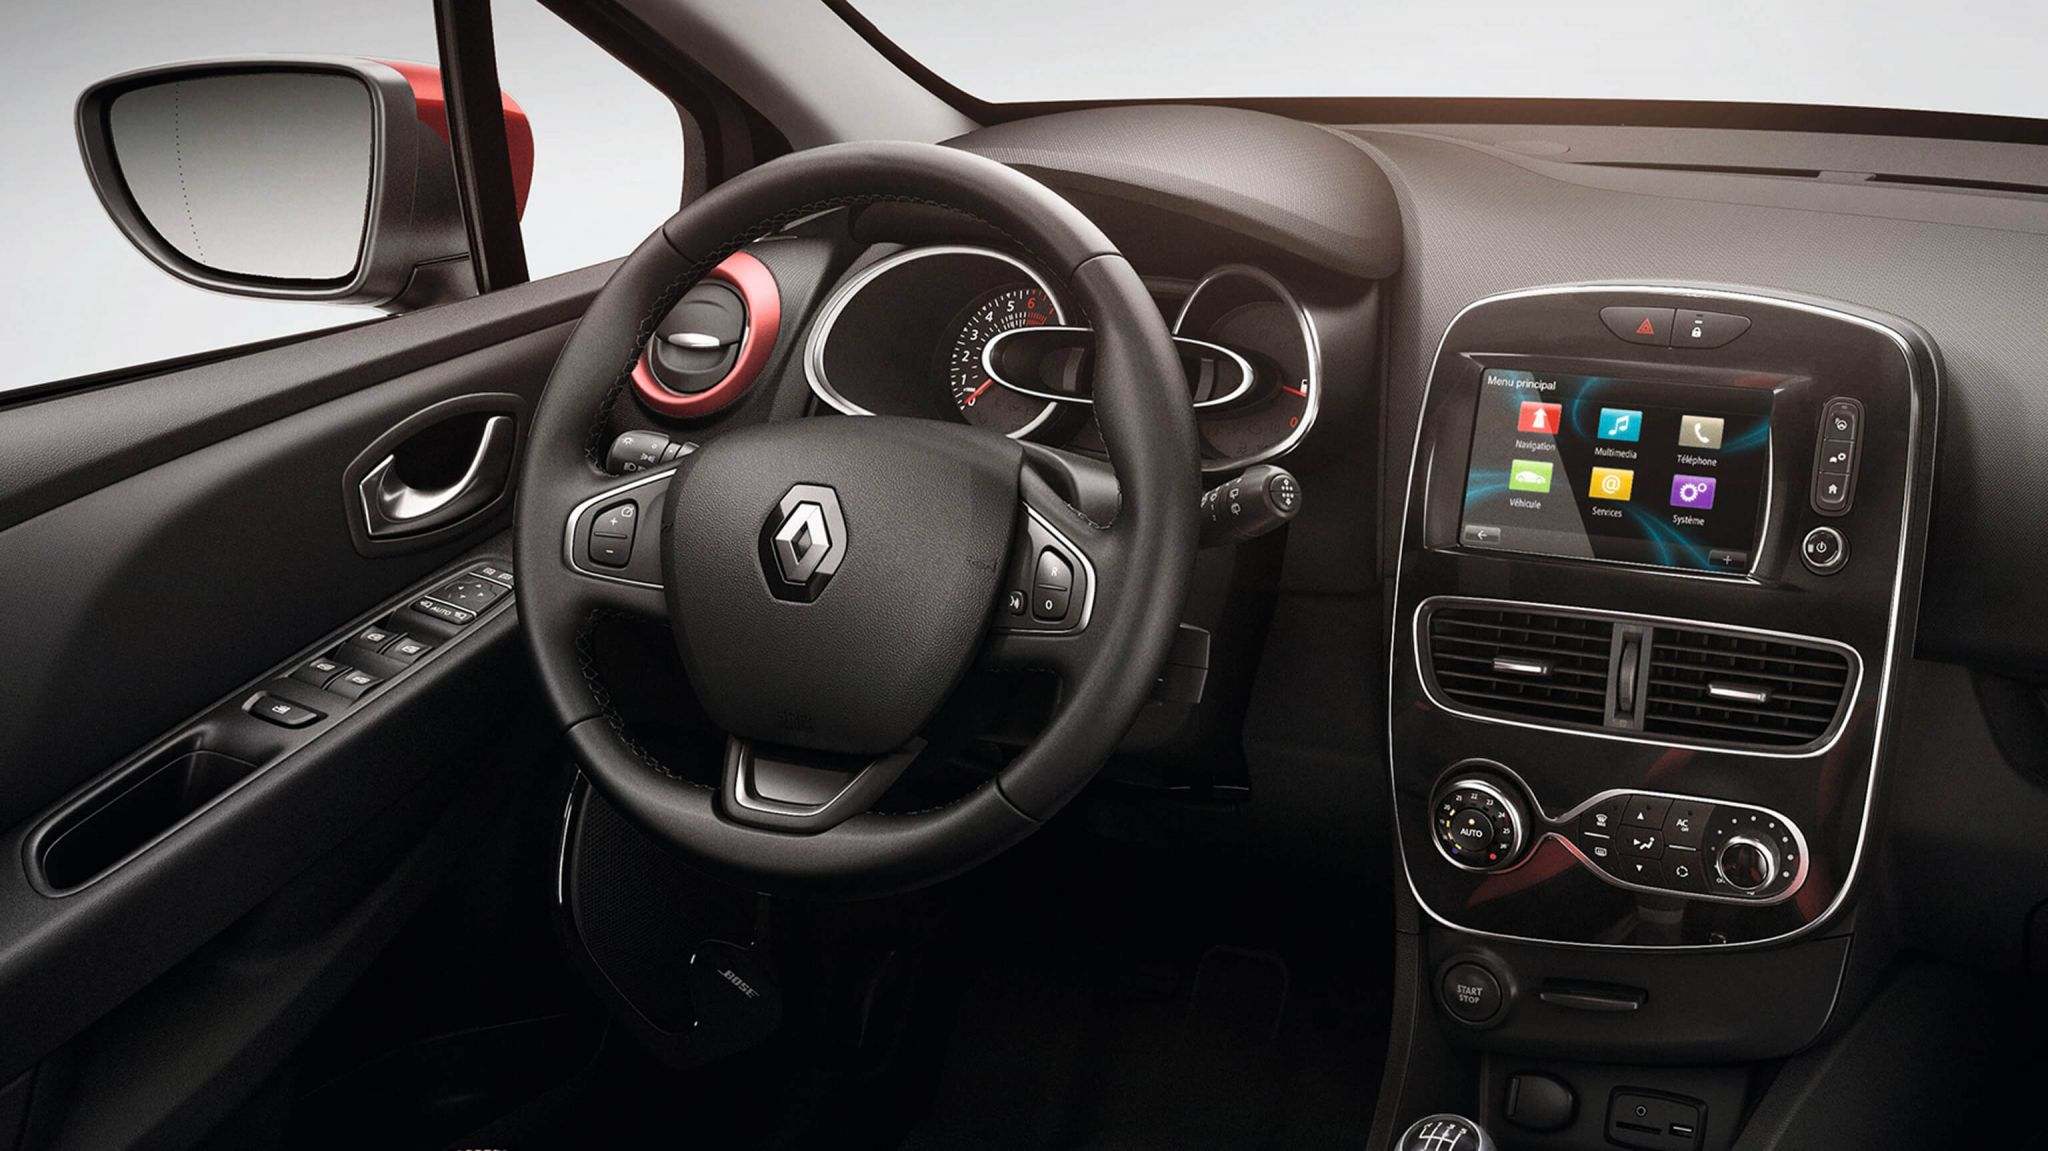 Renault Clio Estate Interieur - Bochane Groep